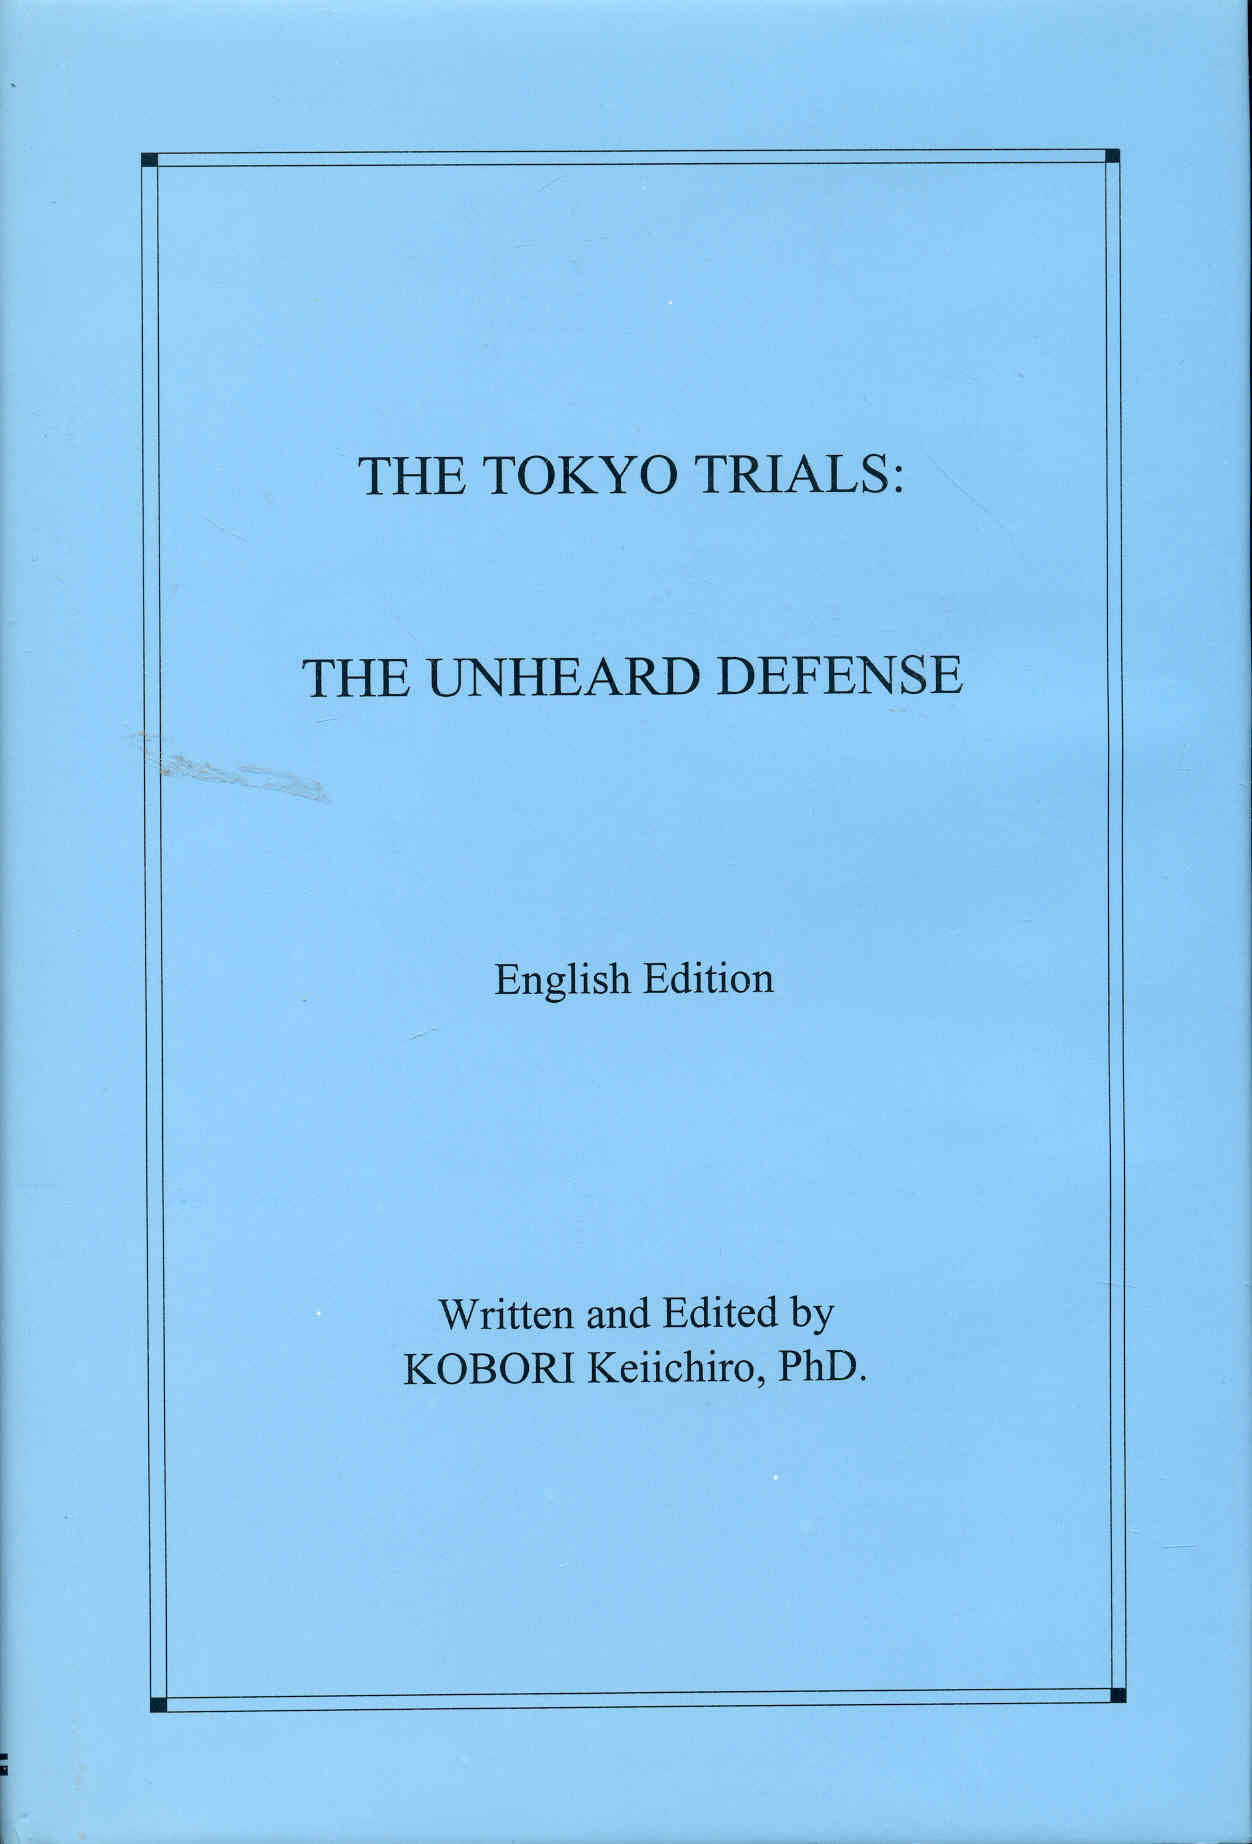 Image for The Tokyo Trials: The Unheard Defense